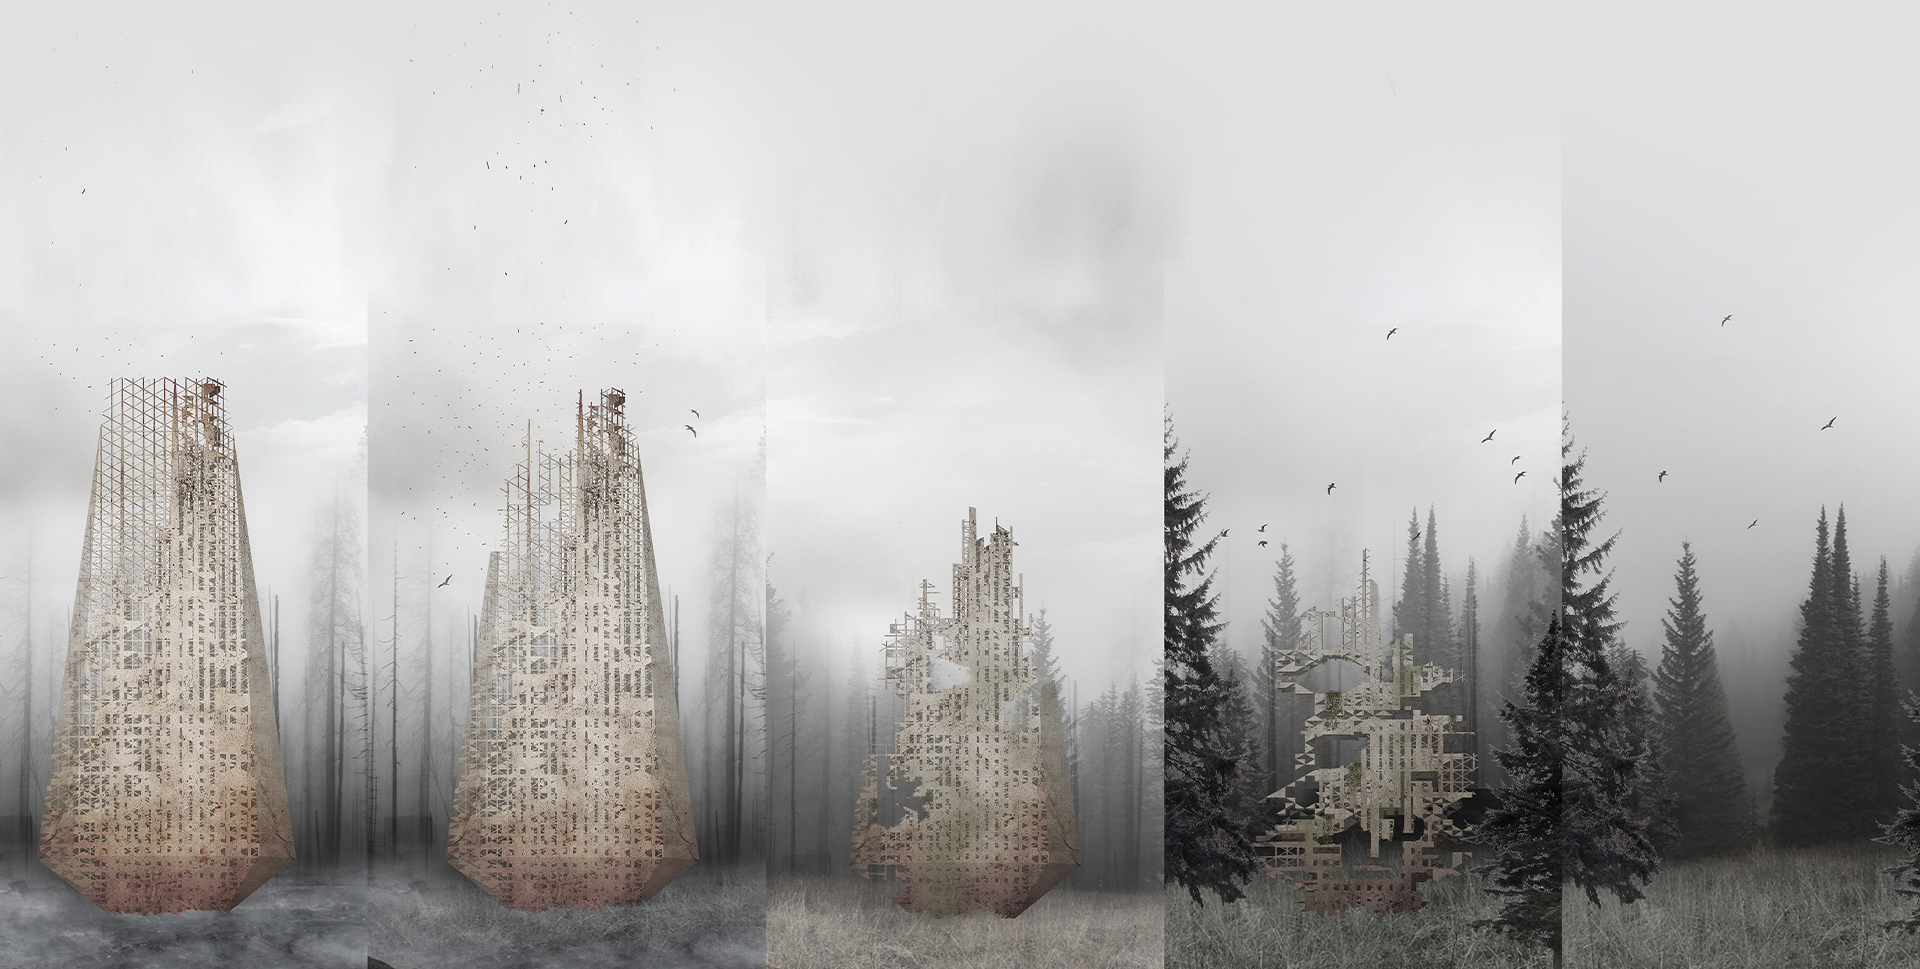 lifecycle of the forest skyscraper